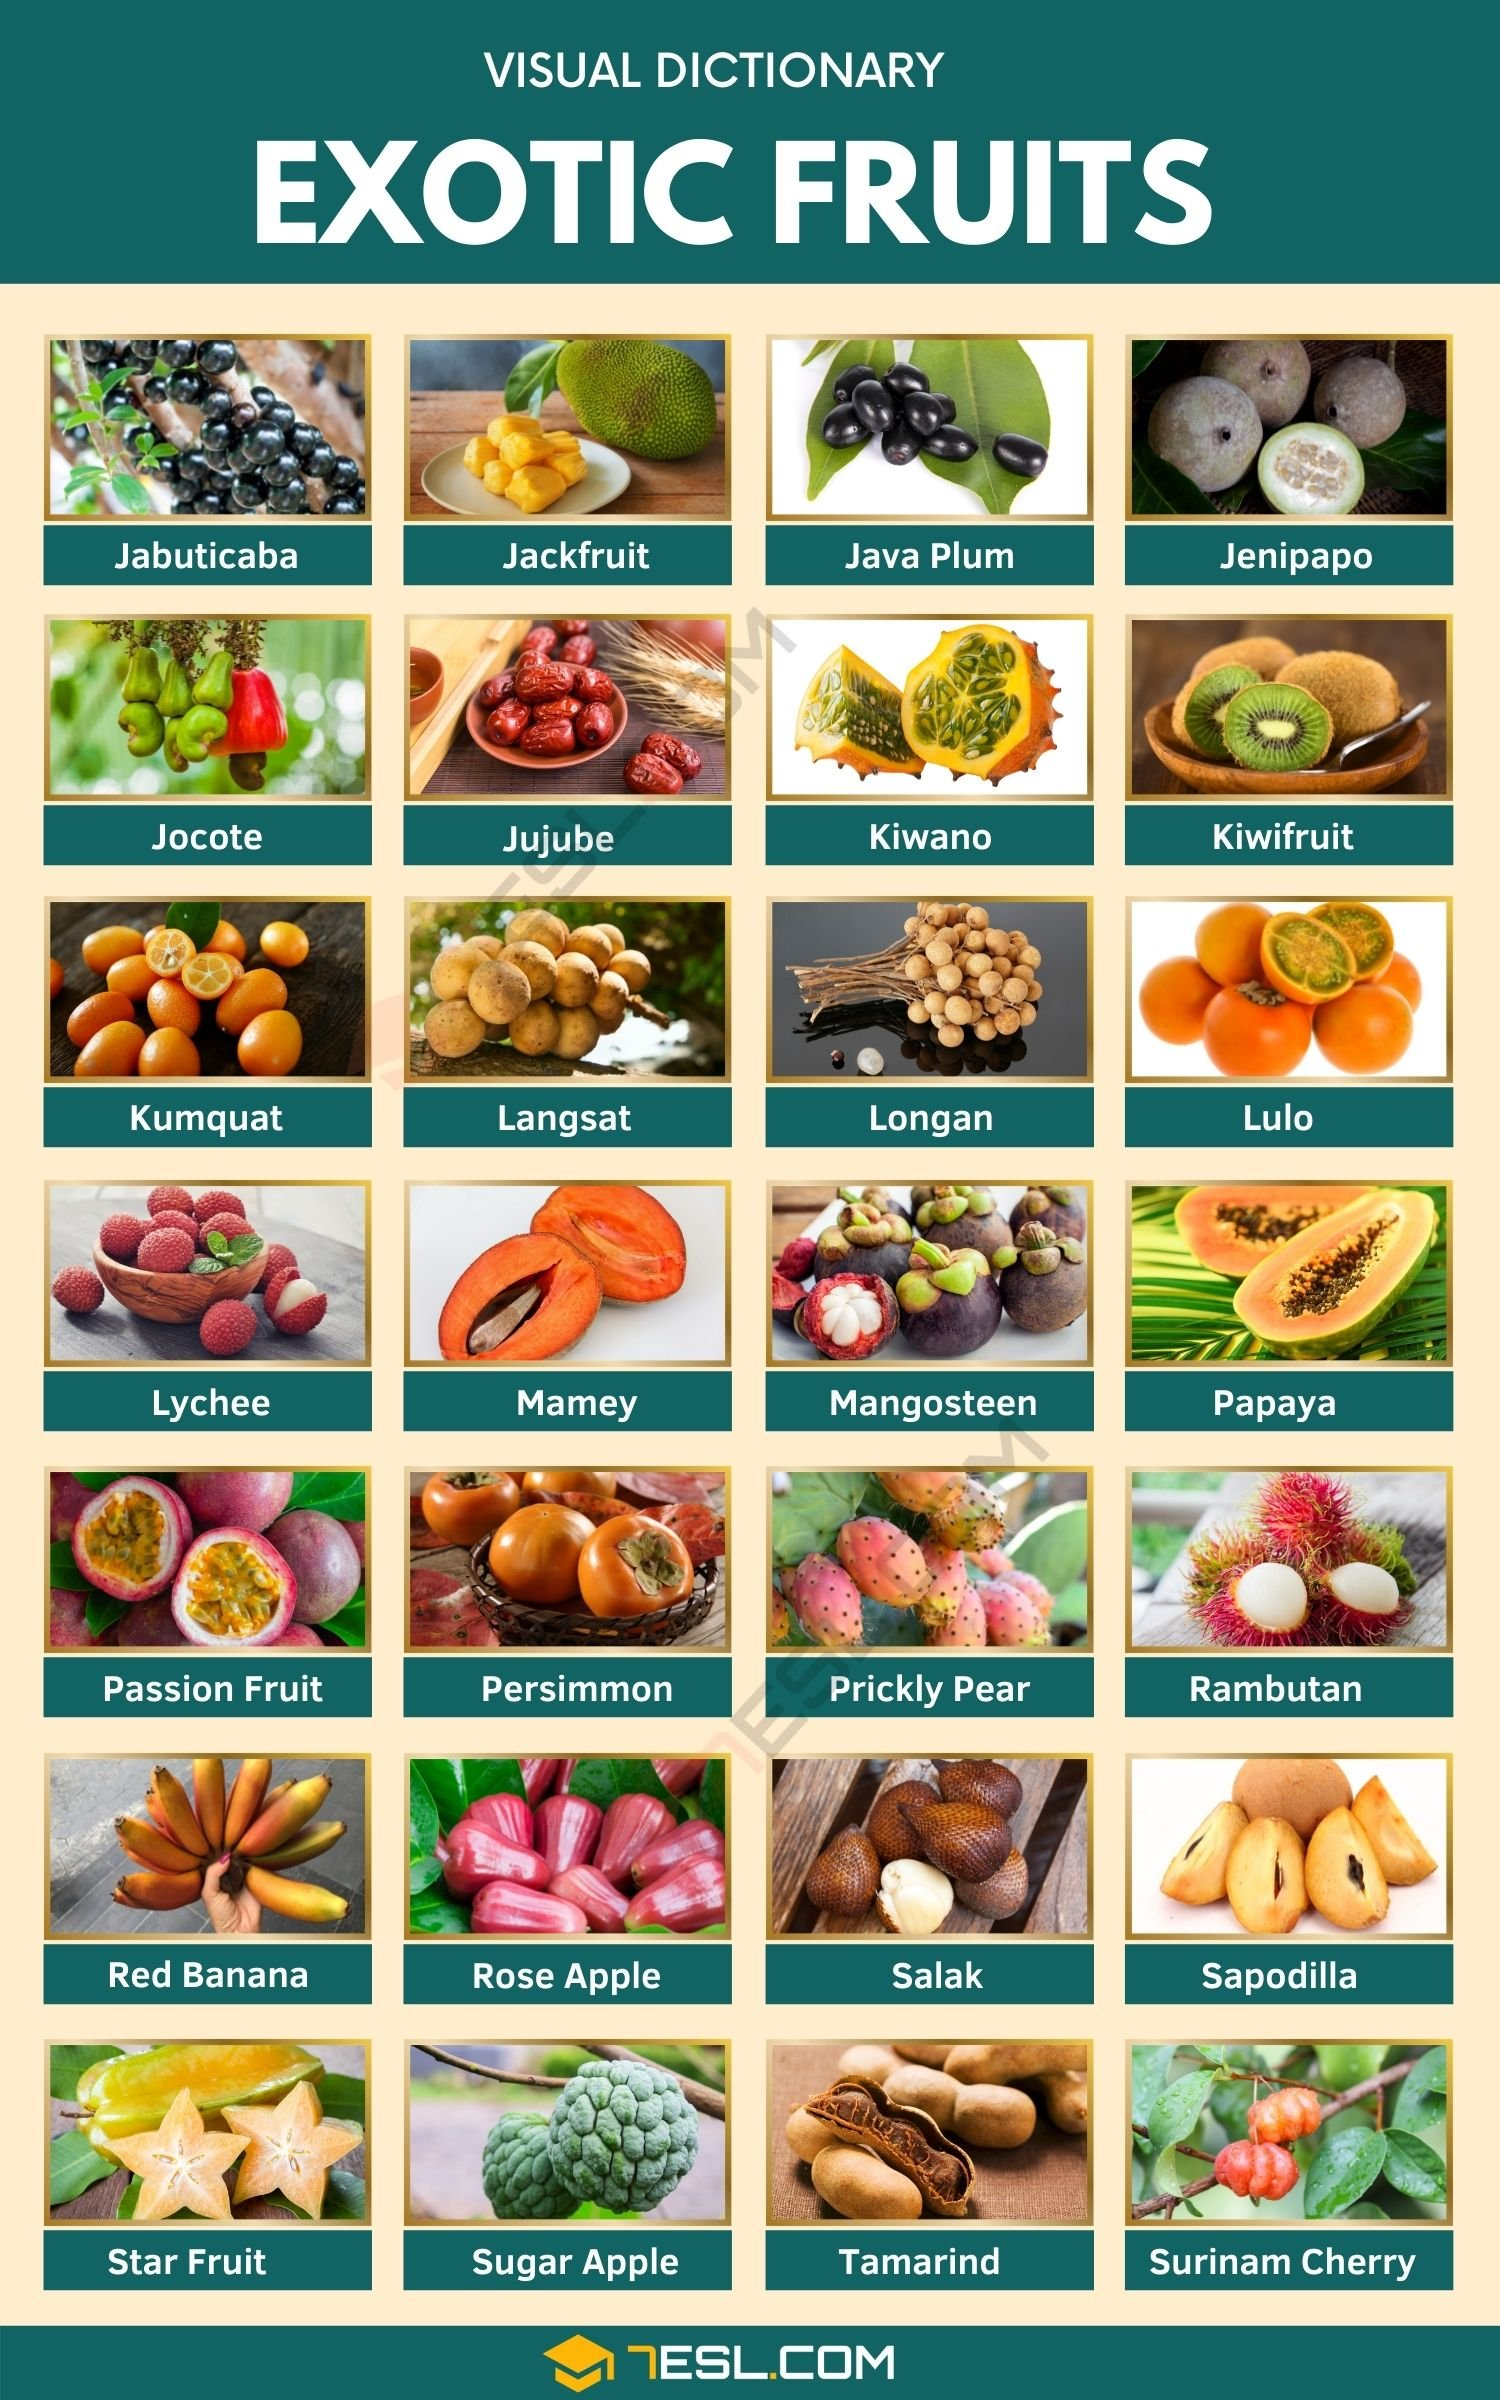 Exotic Fruits | List of 75+ Exotic Fruits You've Probably Never Heard Of